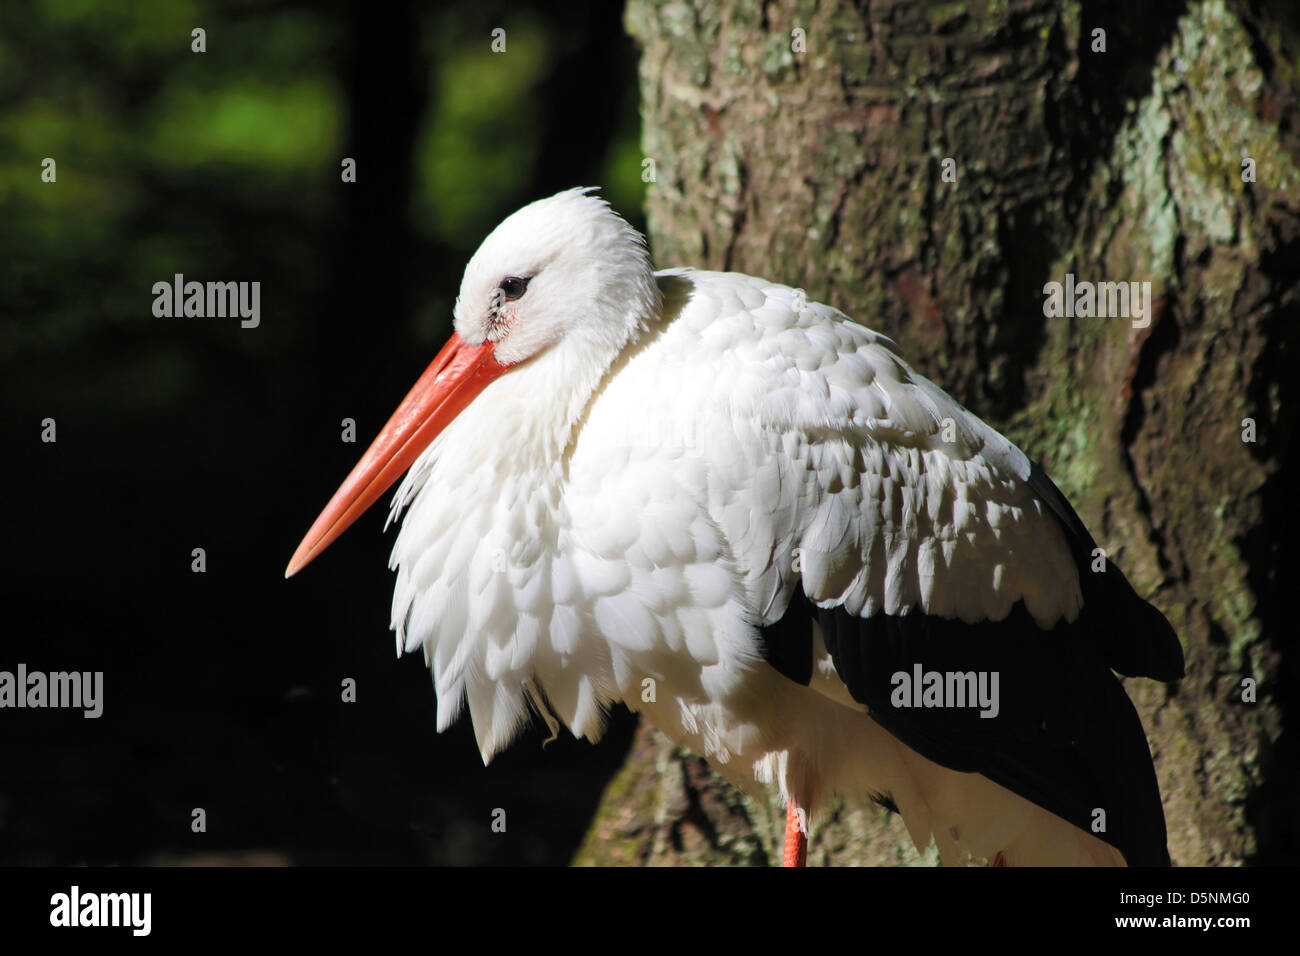 White Stork (Ciconia ciconia) in the Taunus forest - Stock Image